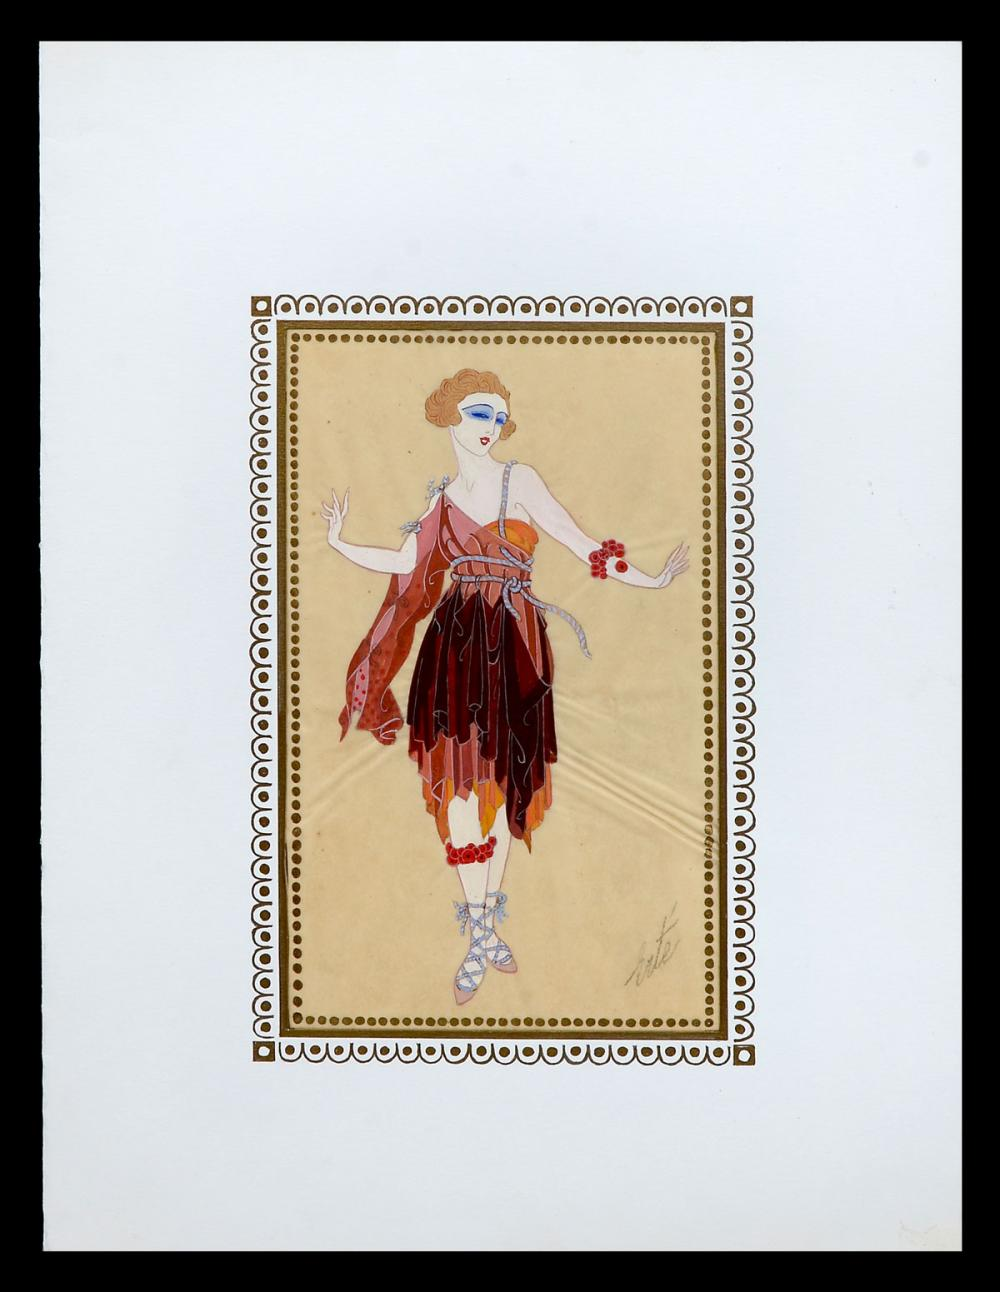 ORIGINAL & RARE ERTE PAINTING ON PARCHMENT